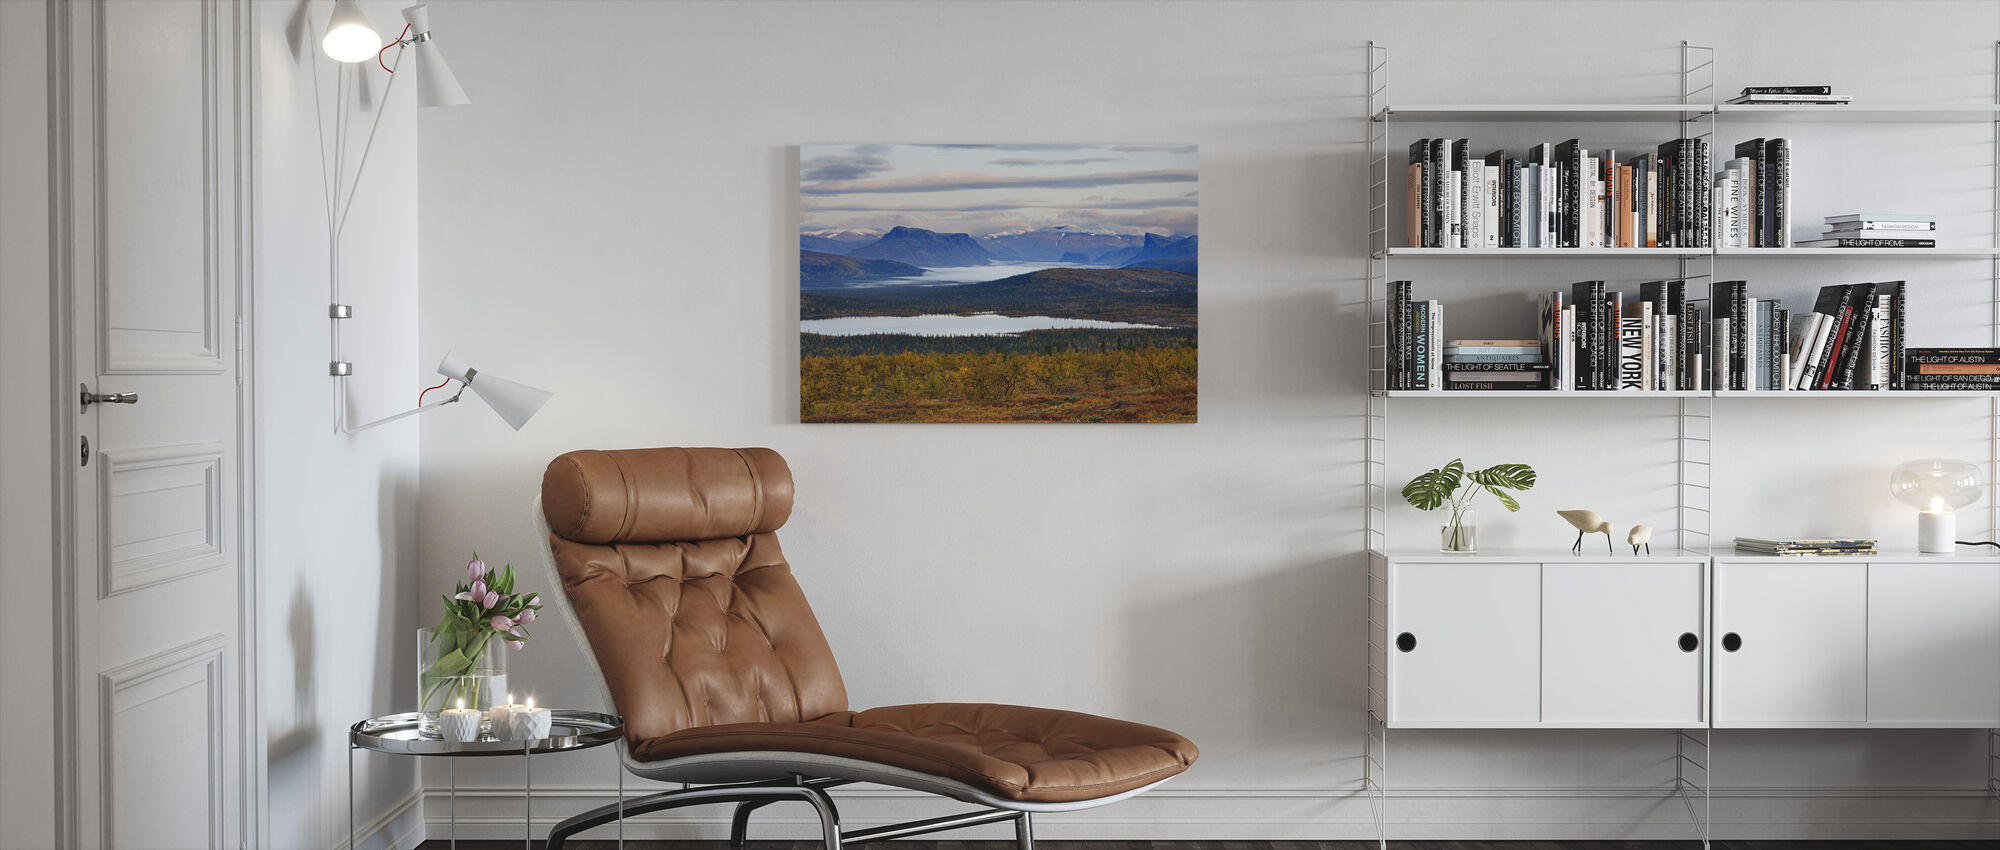 Lapland Mountains, Sweden - Canvas print - Living Room